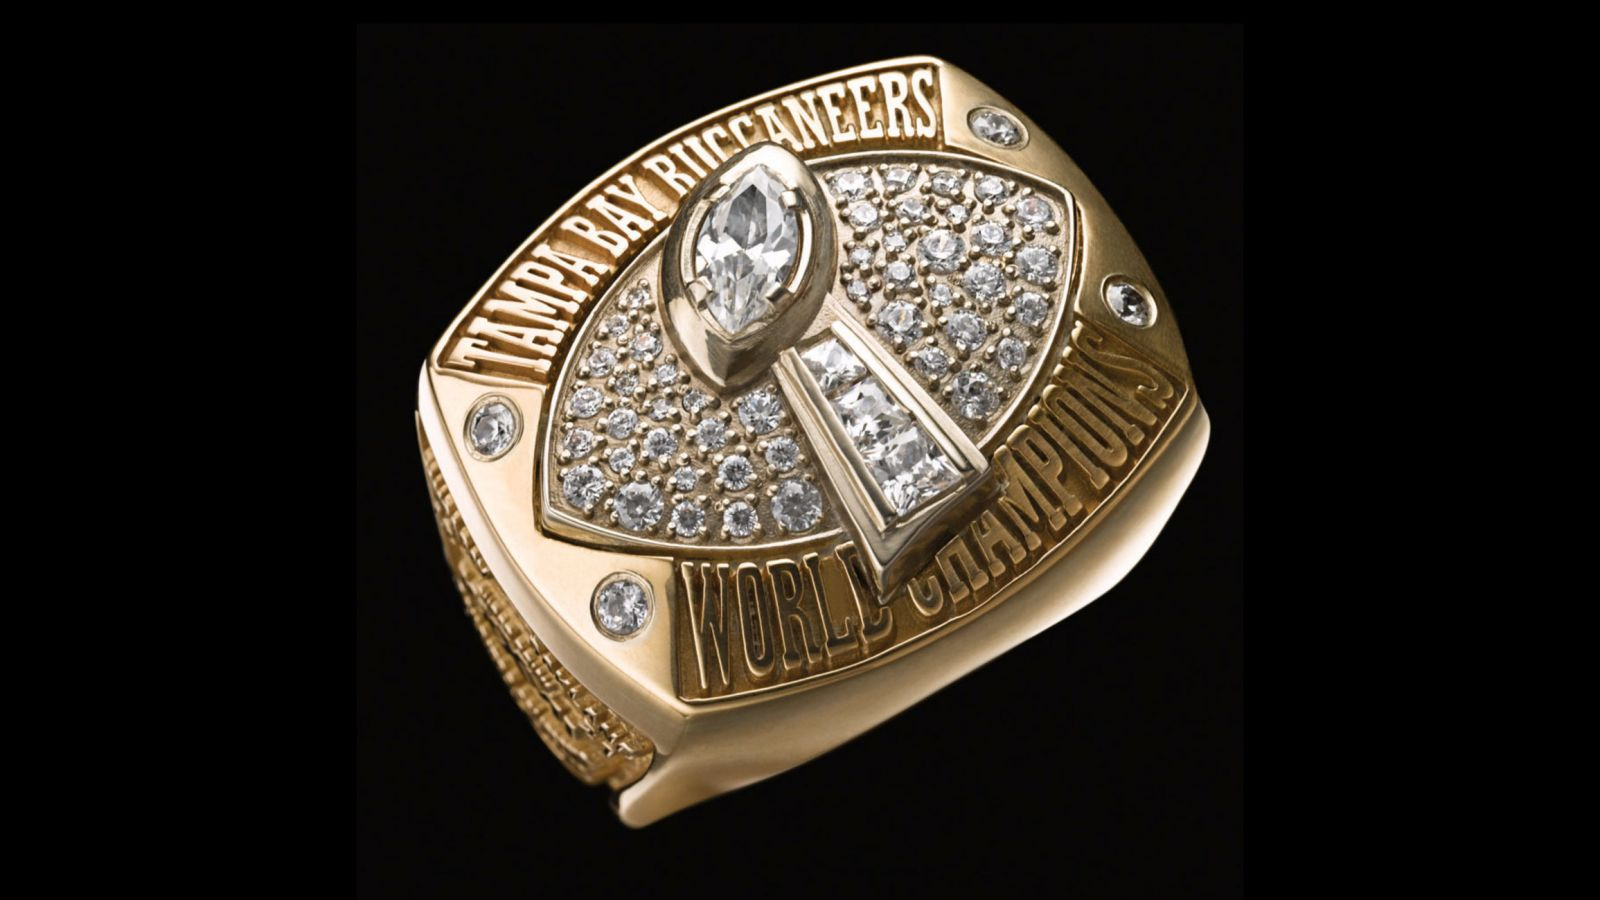 2002 Tampa Bay Buccaneers Super Bowl Ring